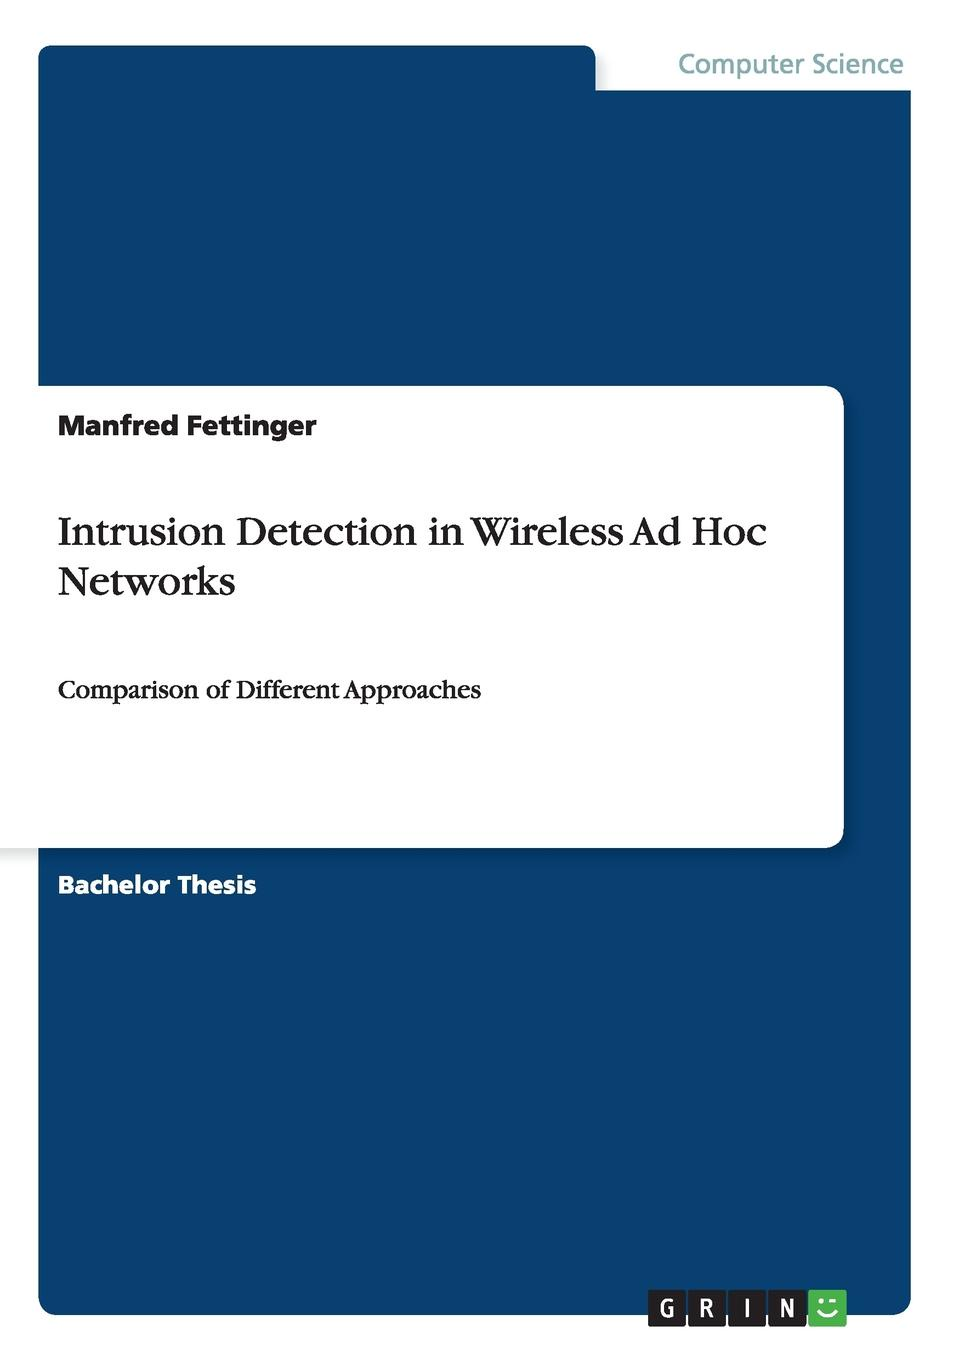 Manfred Fettinger Intrusion Detection in Wireless Ad Hoc Networks smart meter networks intrusion detection system by design